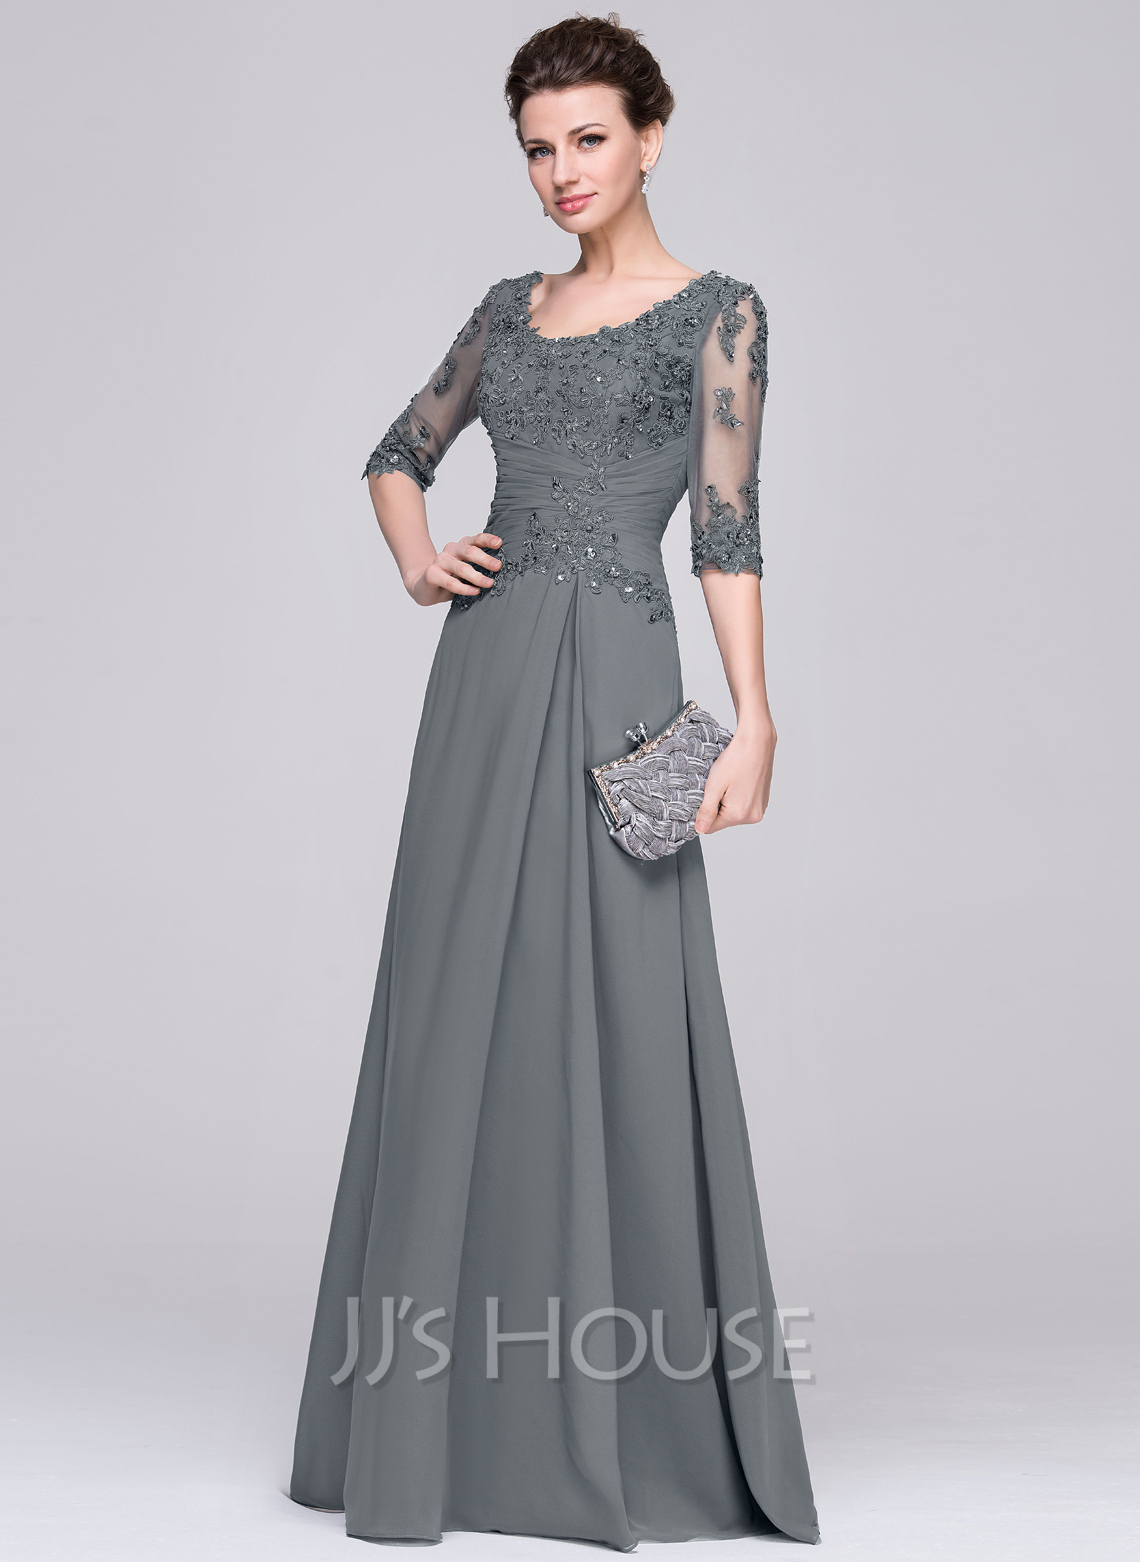 3227143d3c7 A-Line Princess Scoop Neck Floor-Length Chiffon Mother of the Bride Dress.  Loading zoom